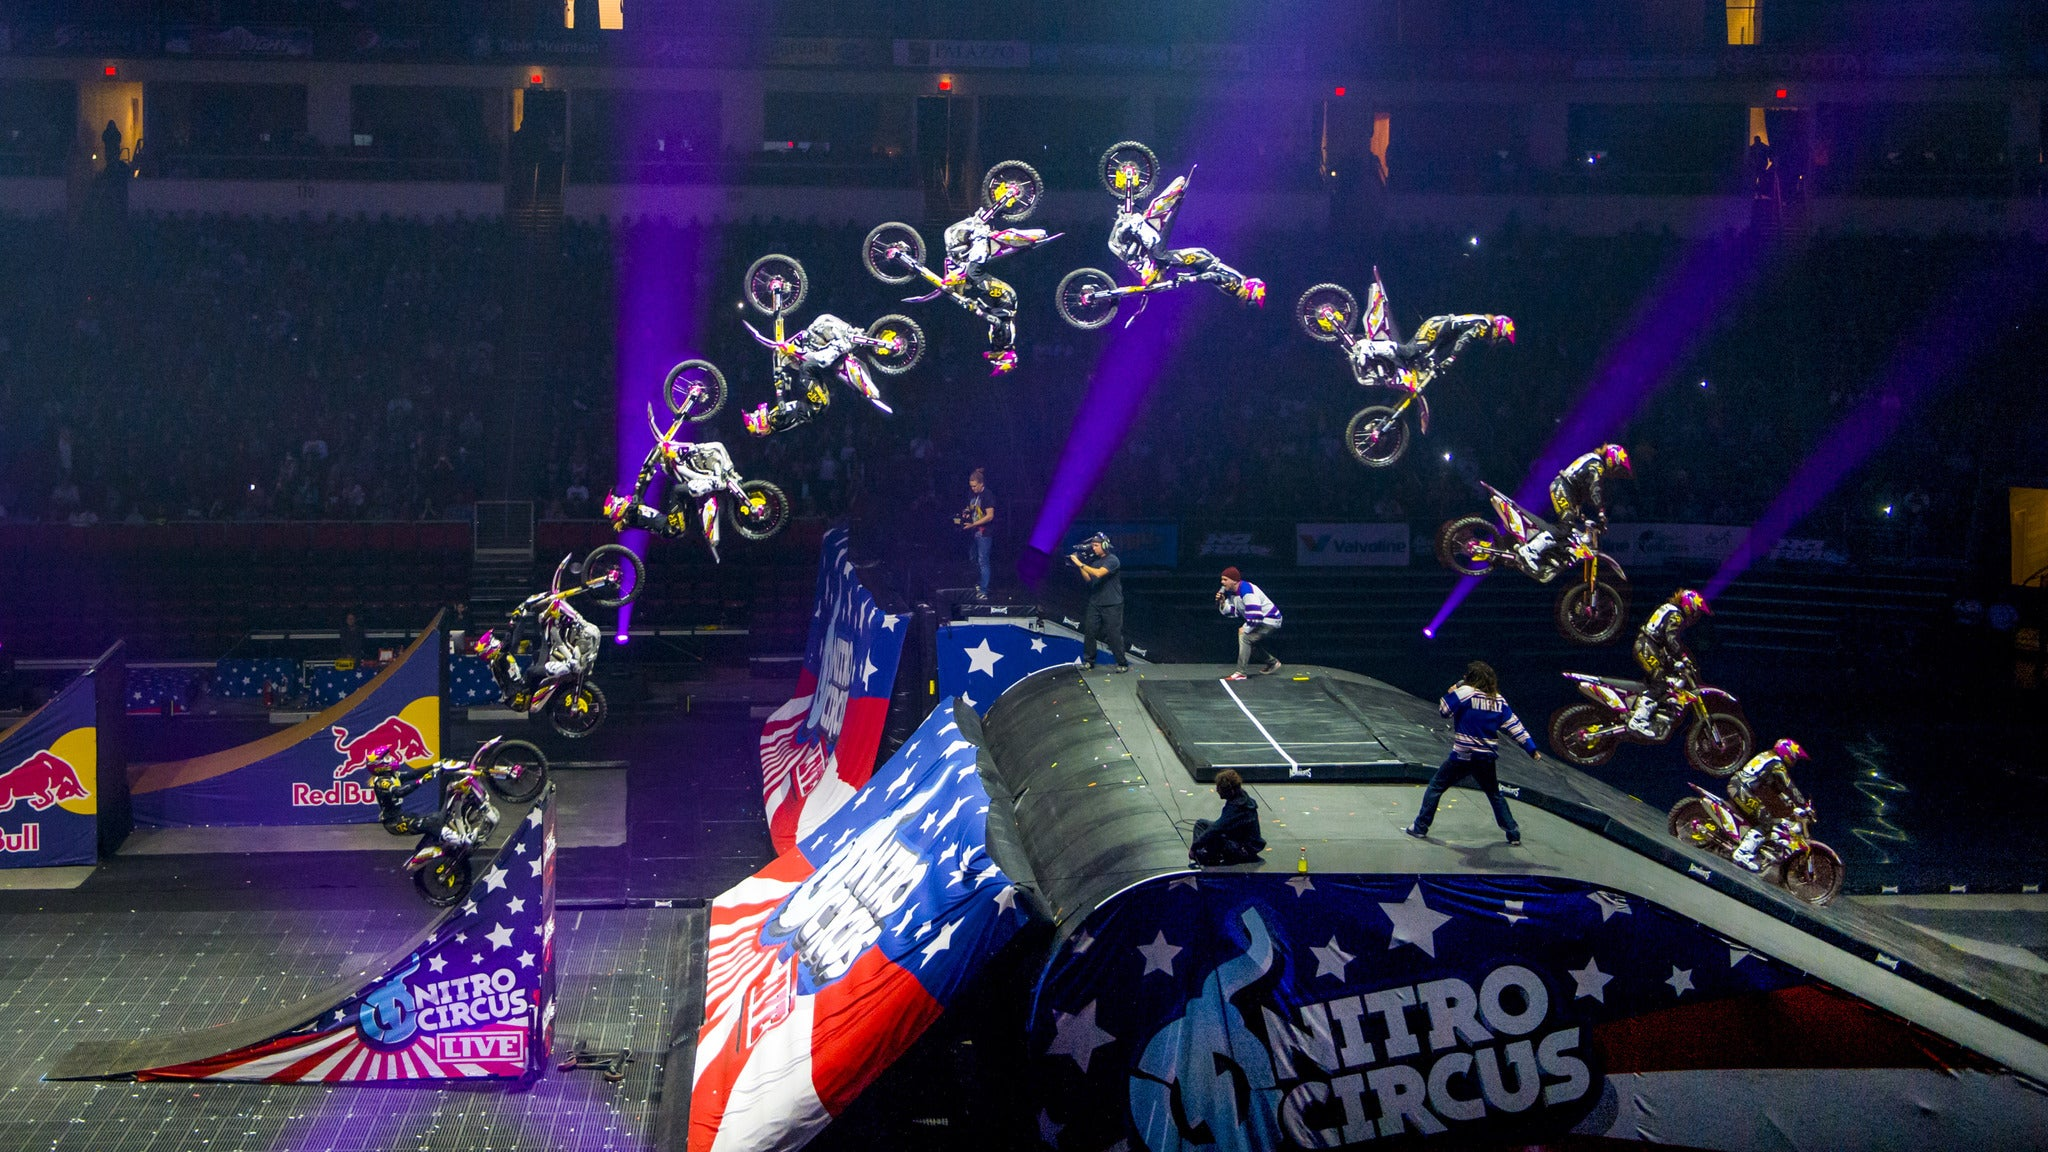 Nitro Circus Live at Qualcomm Stadium